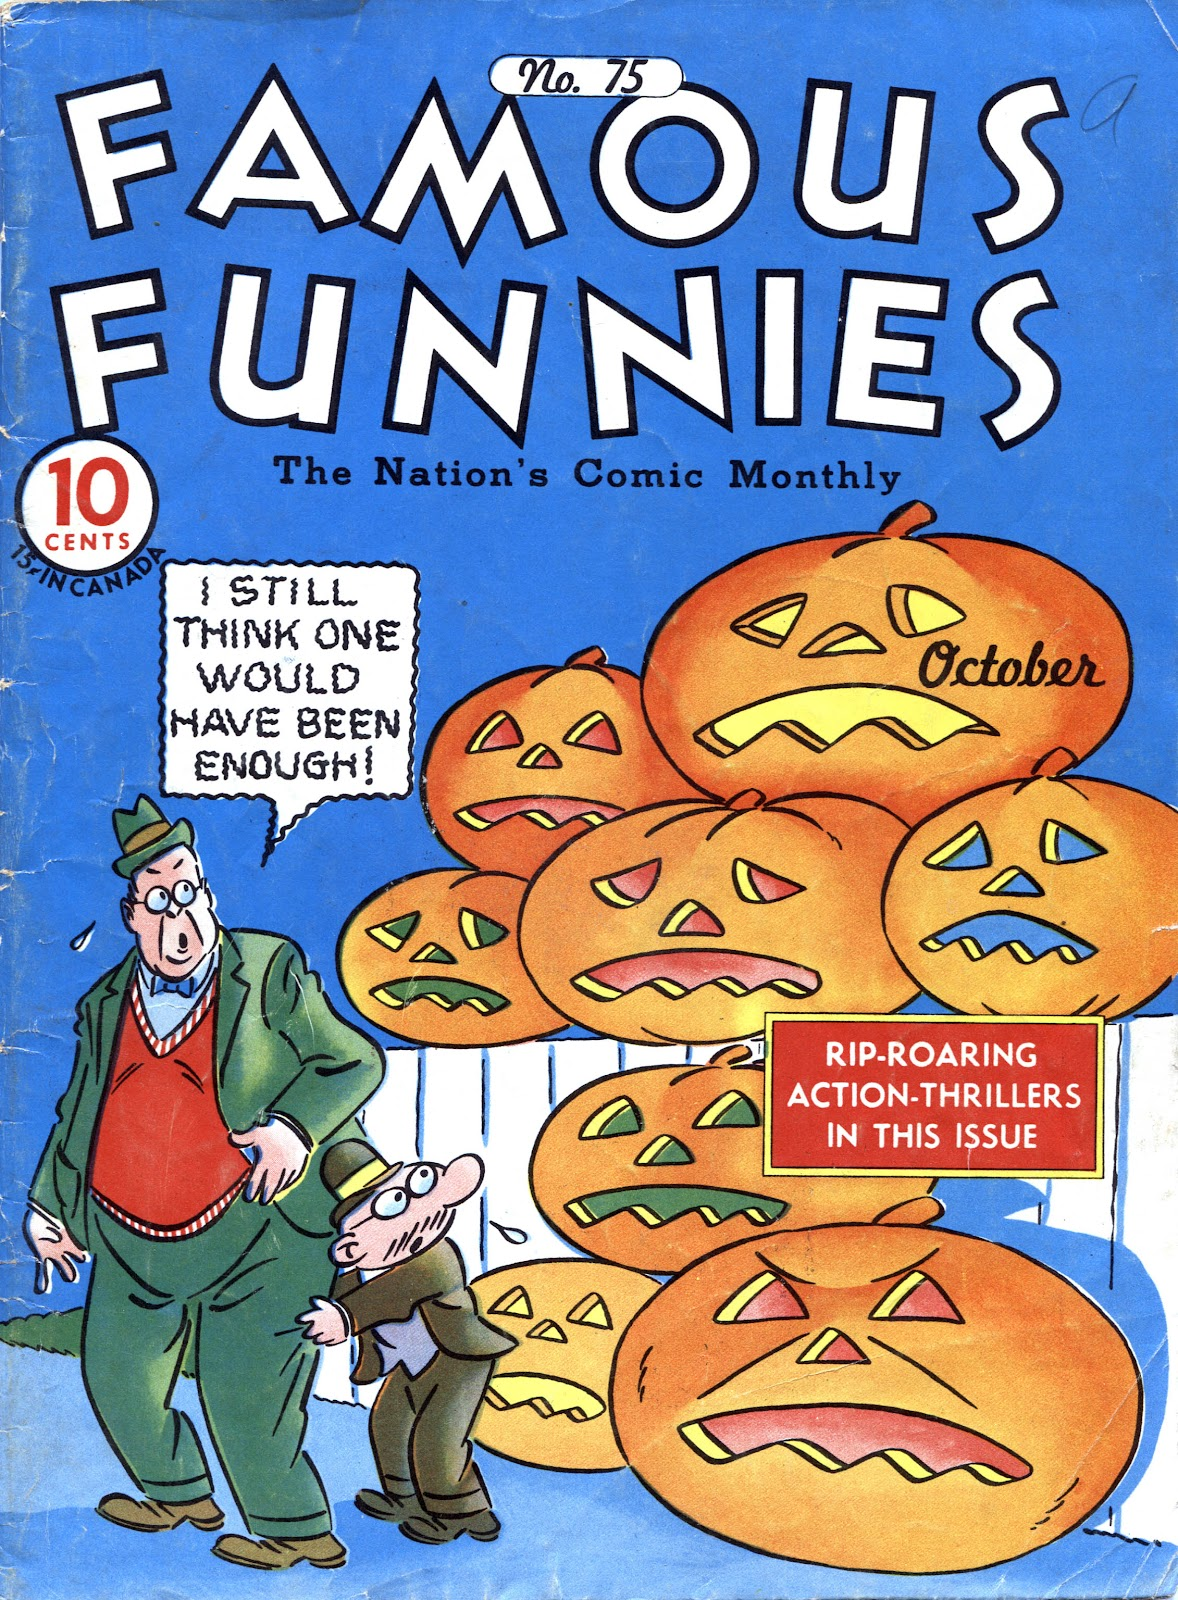 Read online Famous Funnies comic -  Issue #75 - 1